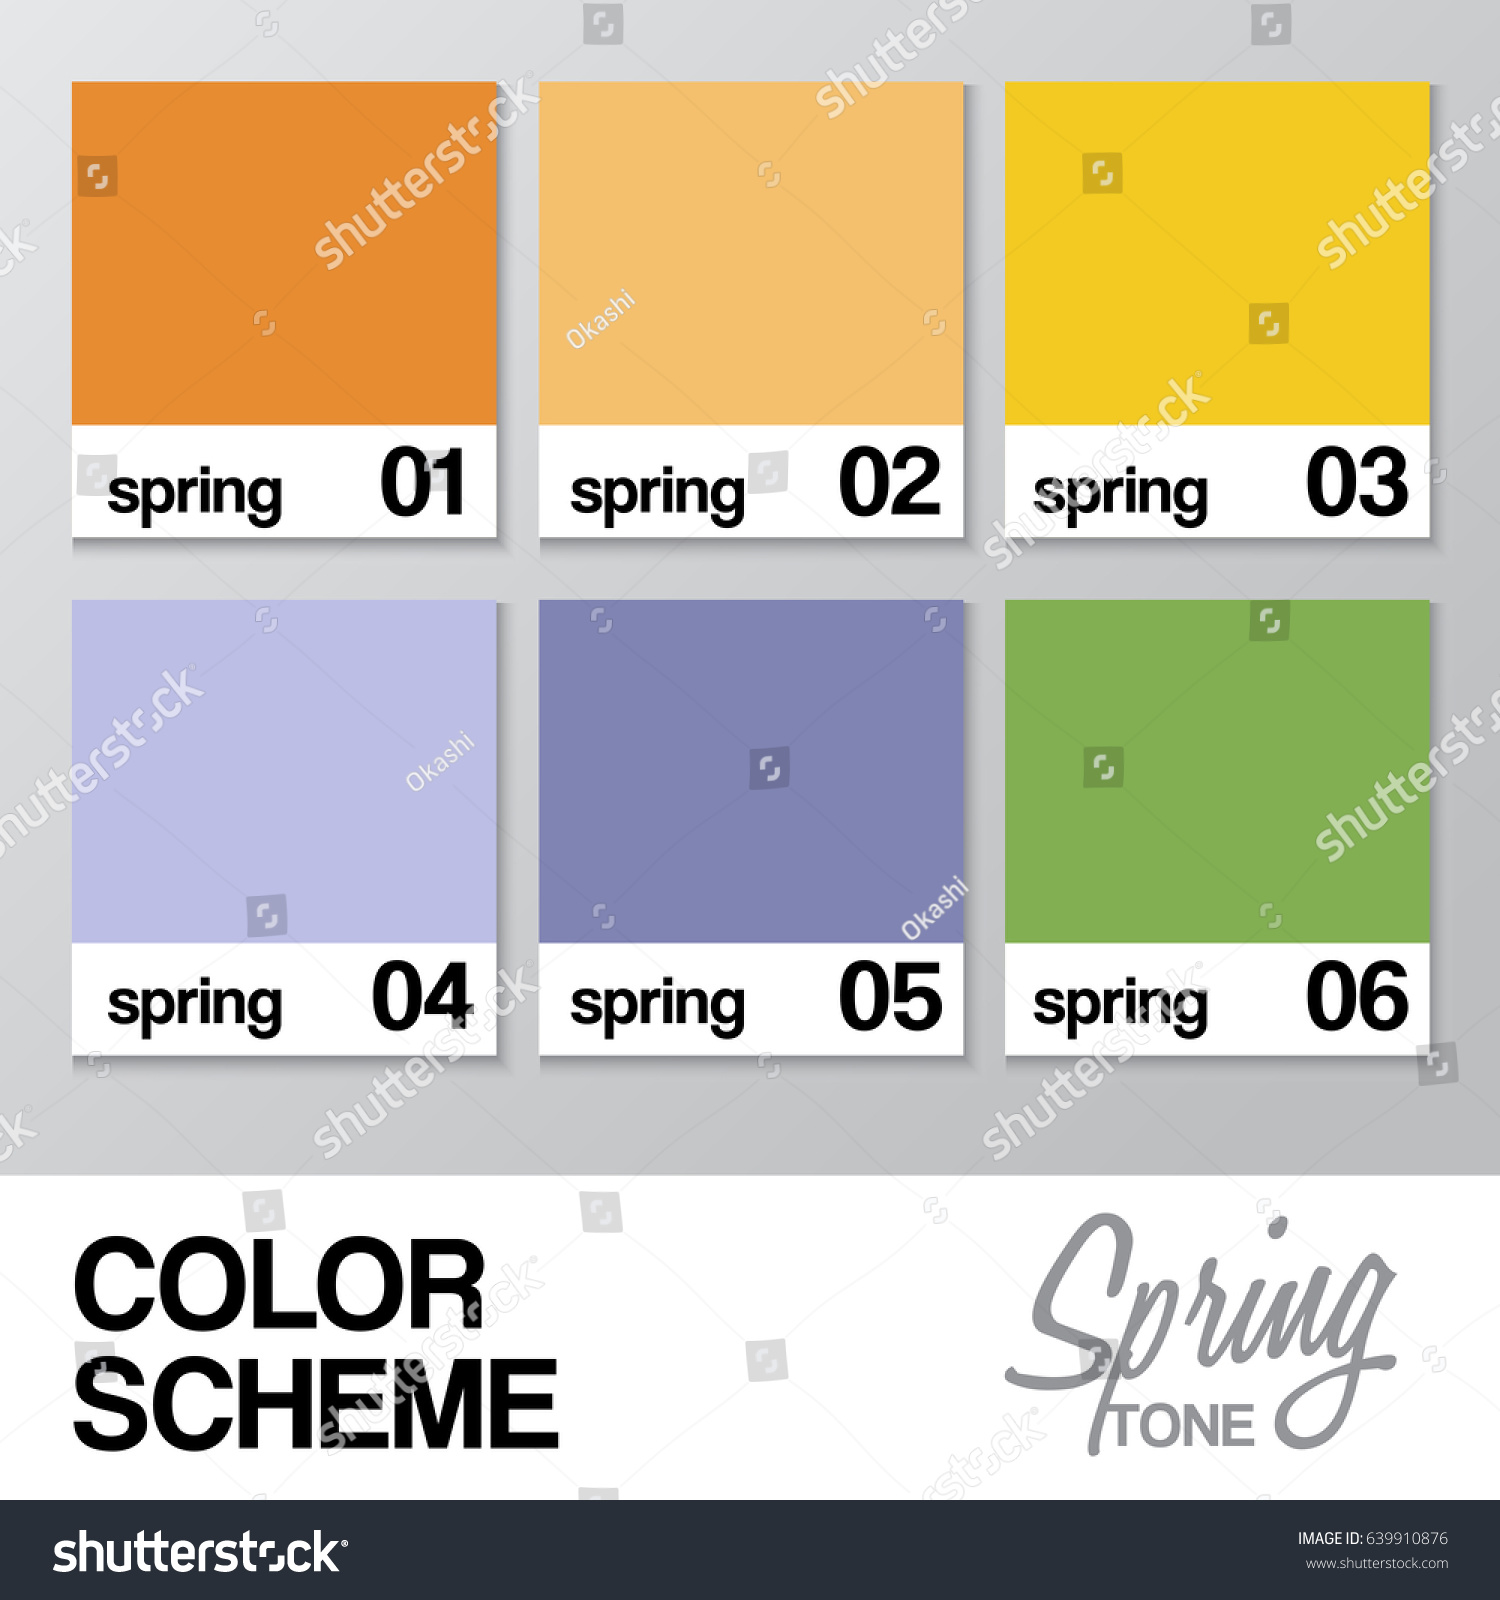 Color chart spring vector illustration stock vector 639910876 color chart for spring vector illustration nvjuhfo Gallery